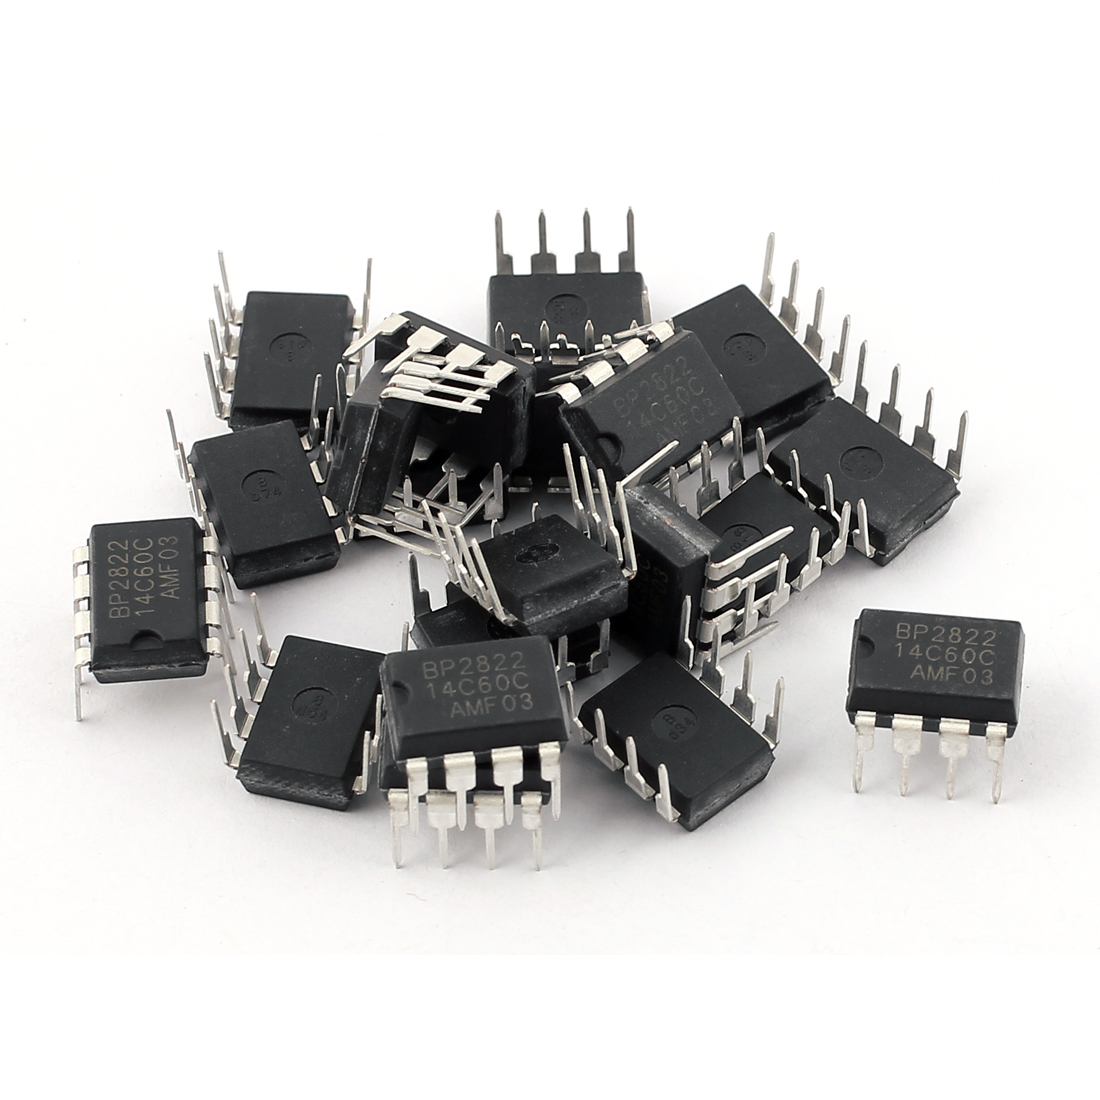 20Pcs BP2822 Replacement DIP-8 Package Type SMT LED Driver IC